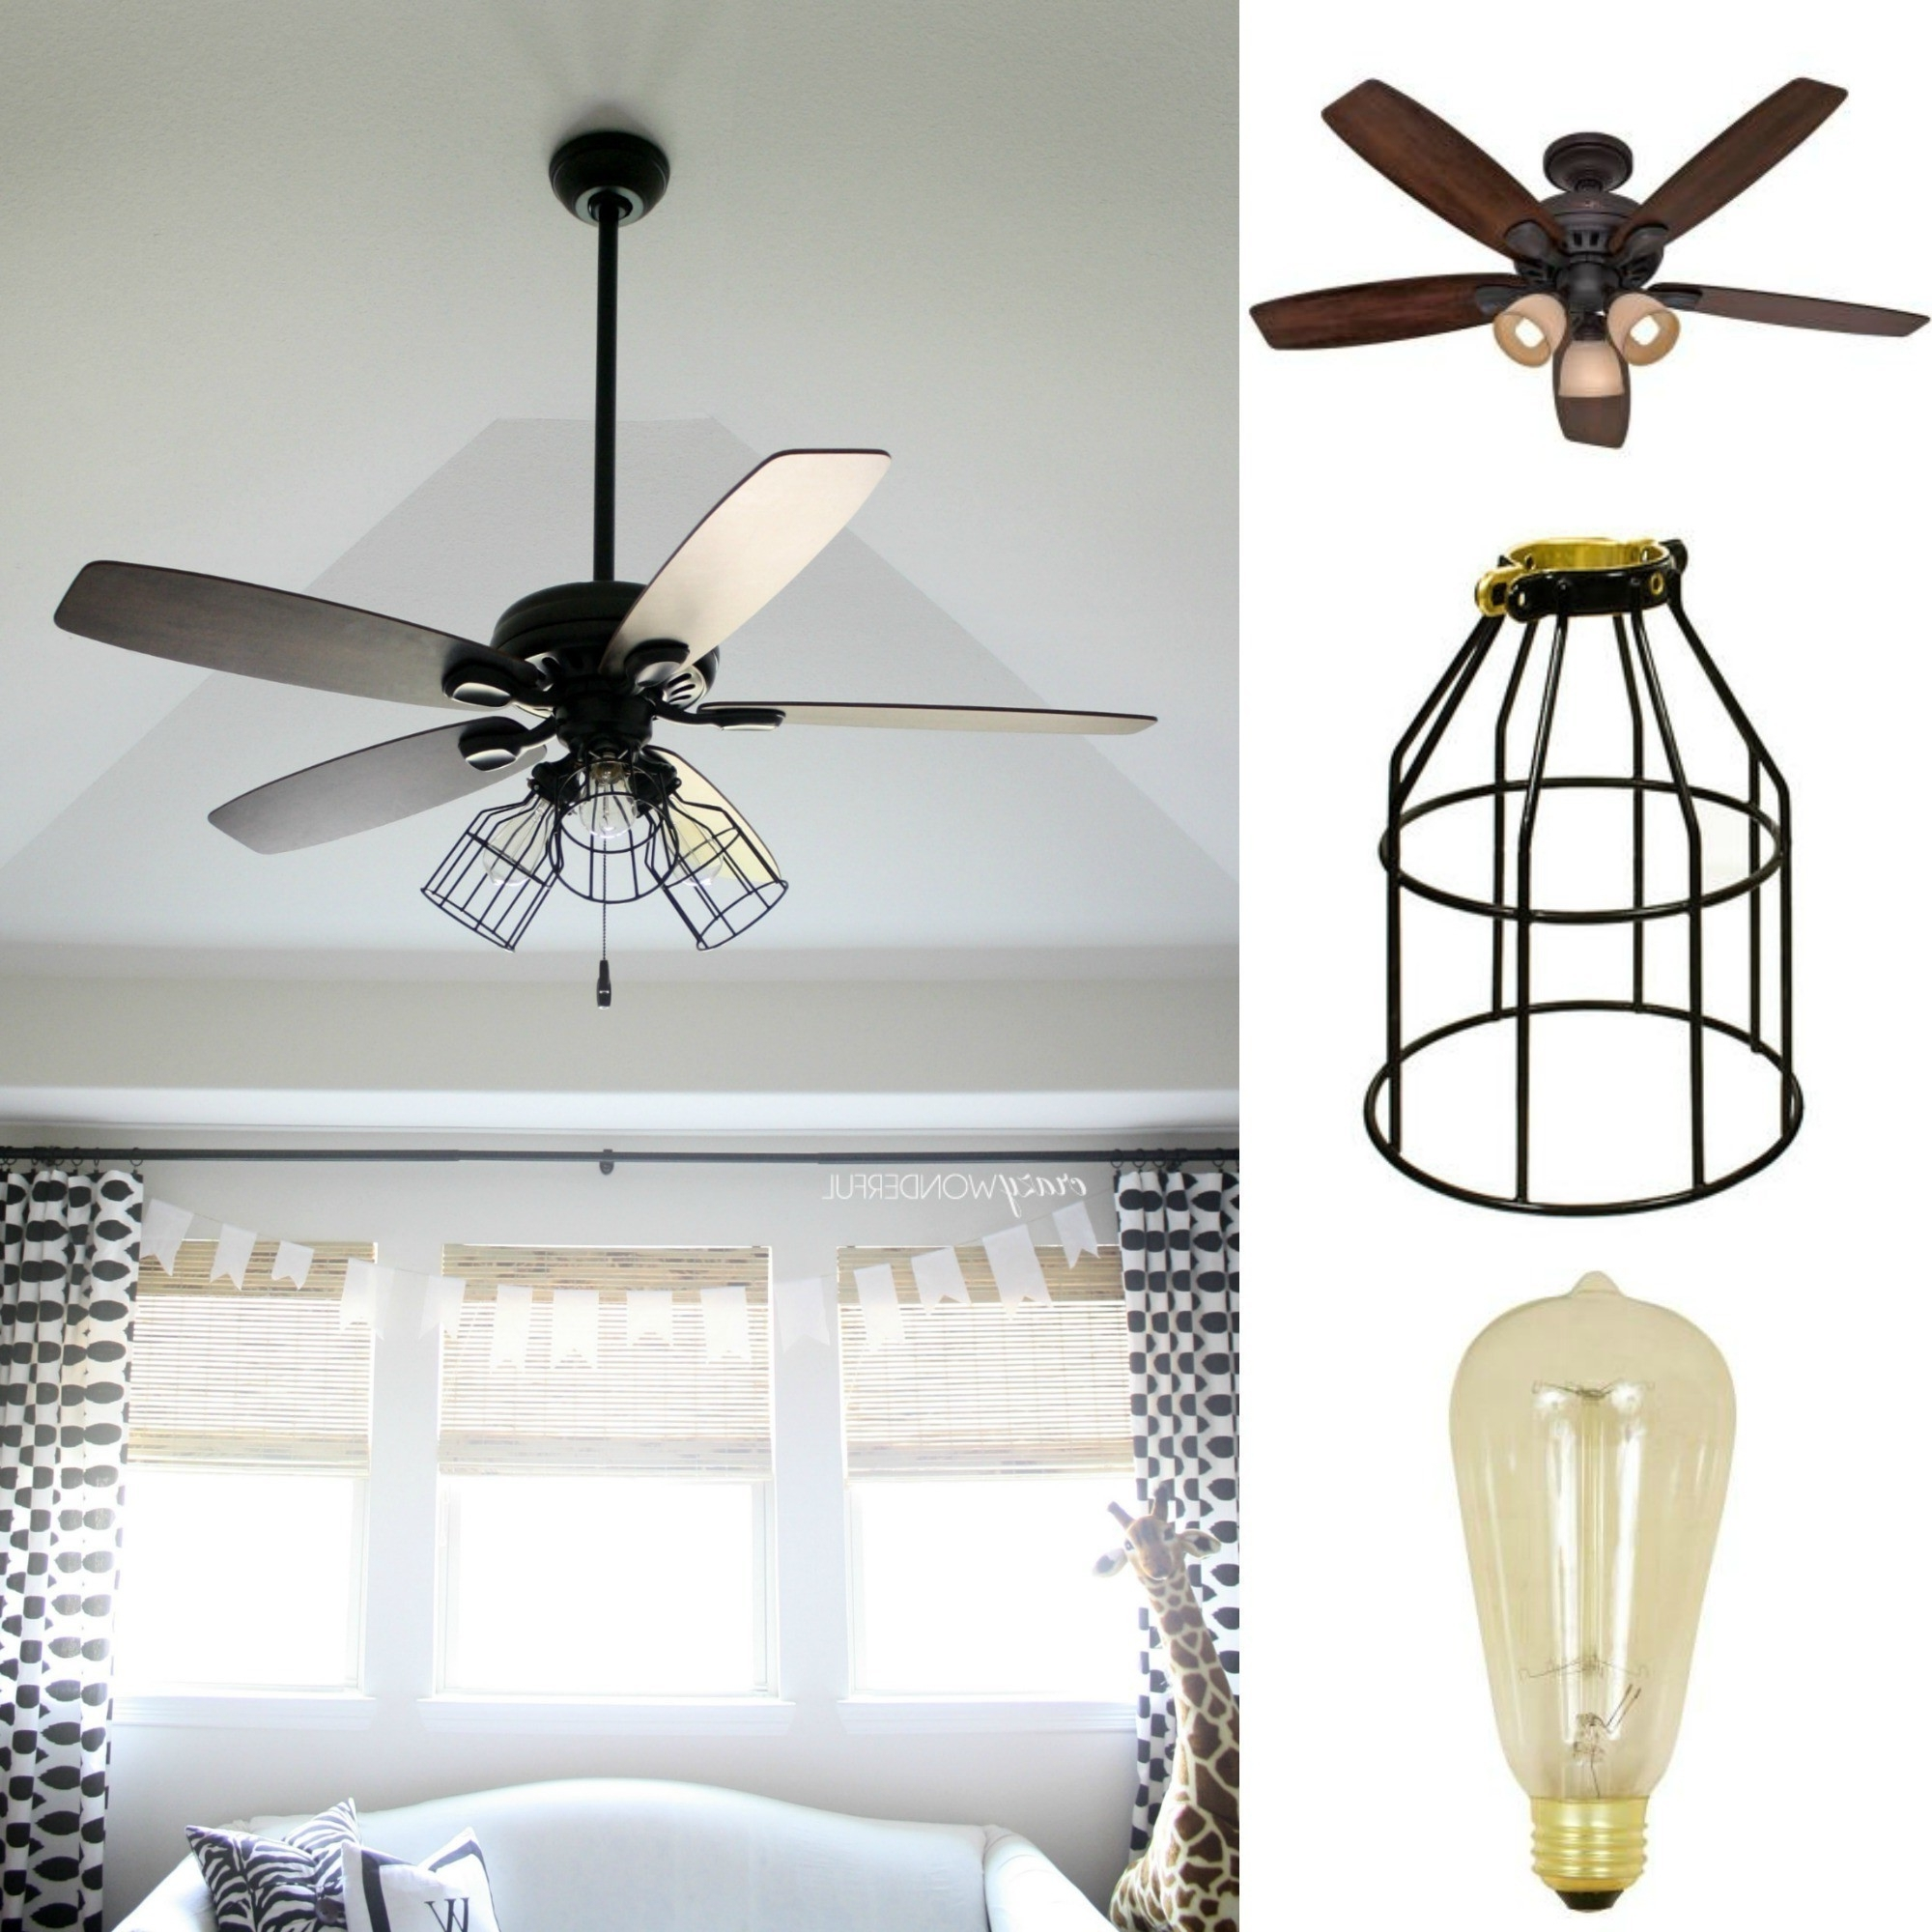 Popular Outdoor Caged Ceiling Fans With Light Pertaining To Diy Cage Light Ceiling Fan · A Hanging Light · Home + Diy On Cut Out (View 17 of 20)